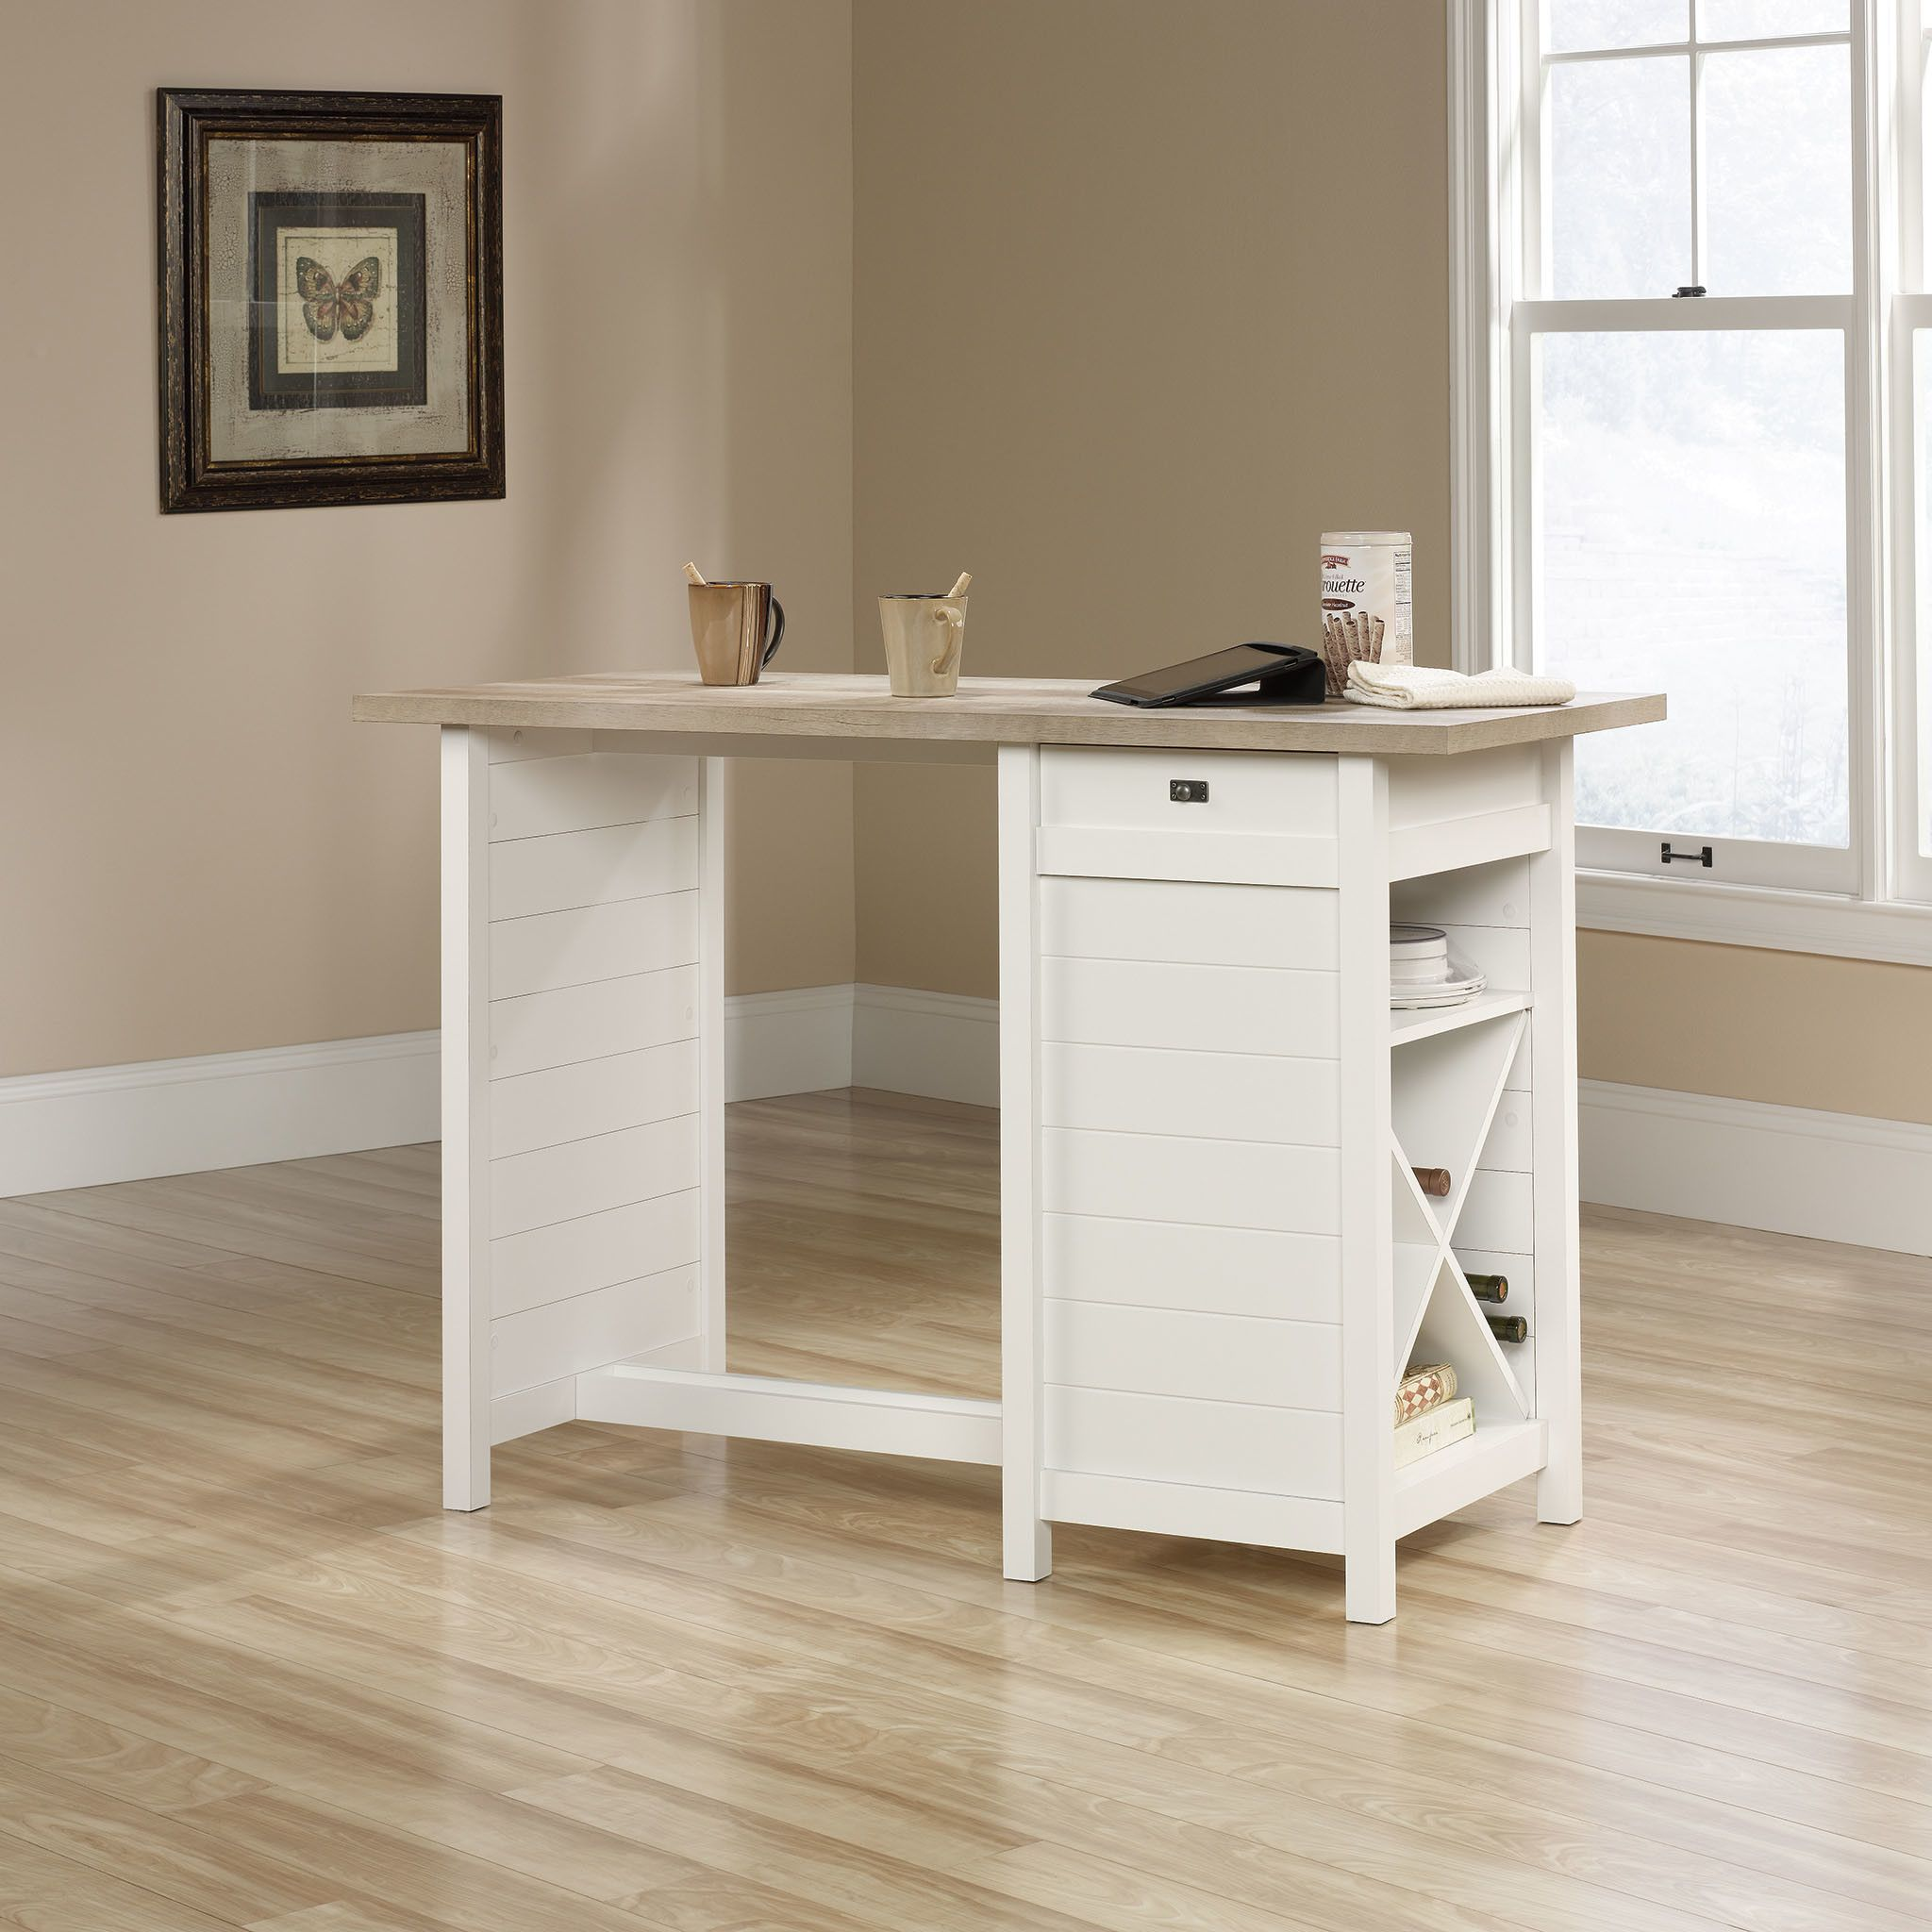 Kitchen Island Base features: -made in the usa. -hampton collection. -interchangeable